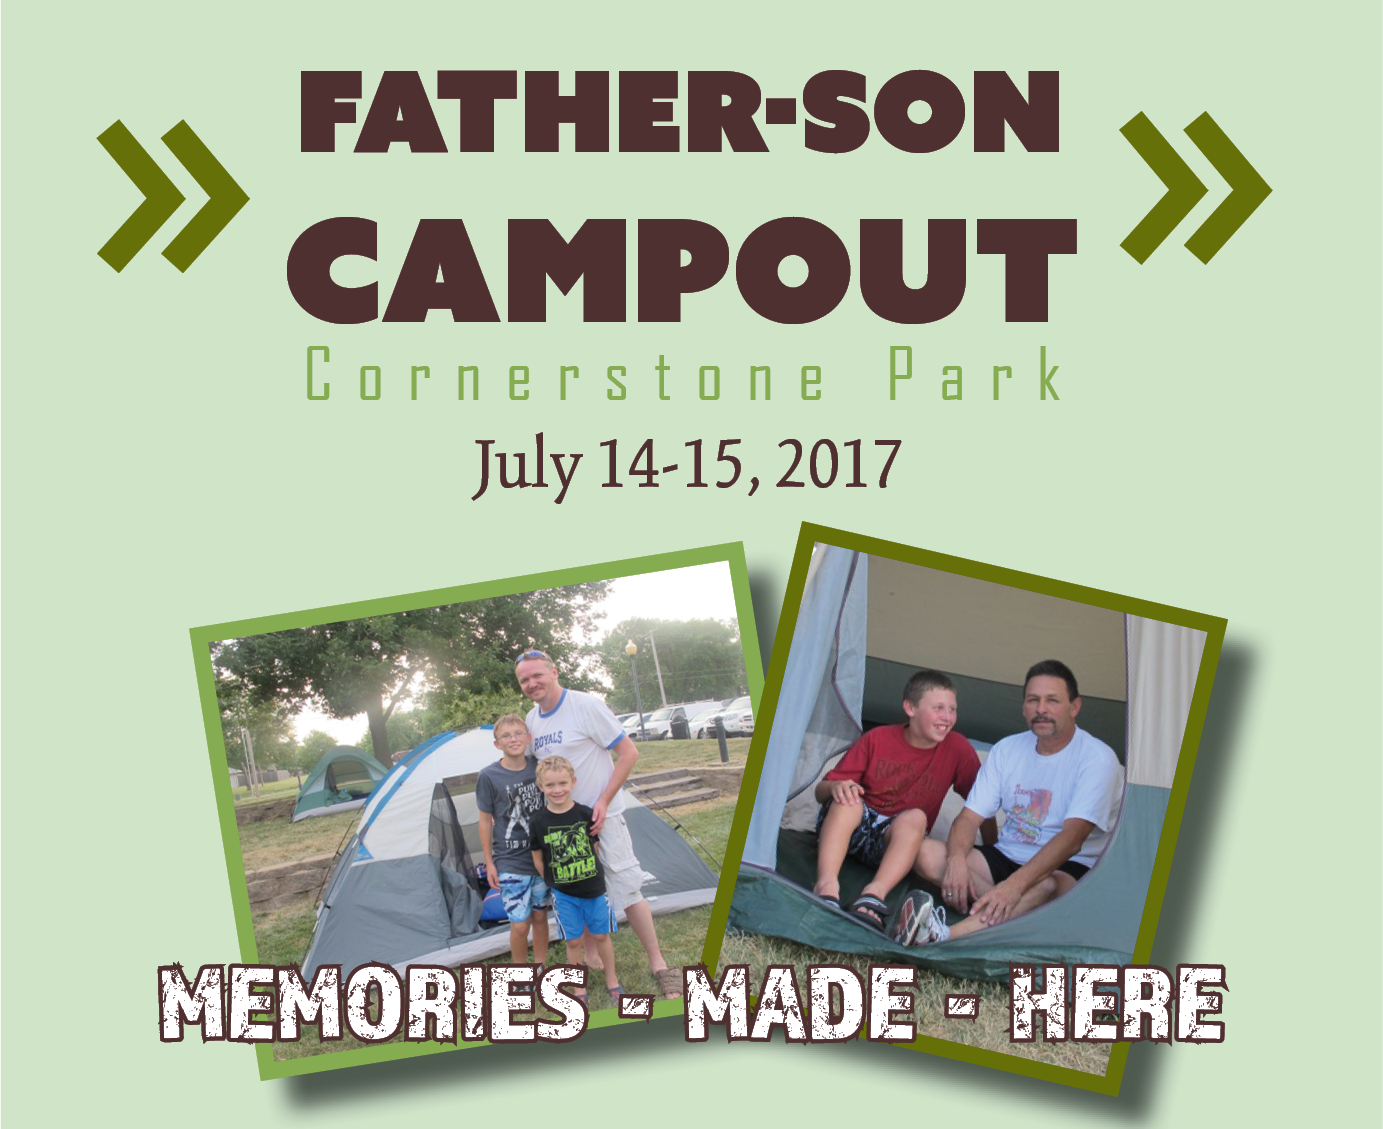 Father Son campout ad for facebook event city web 4.6 in w